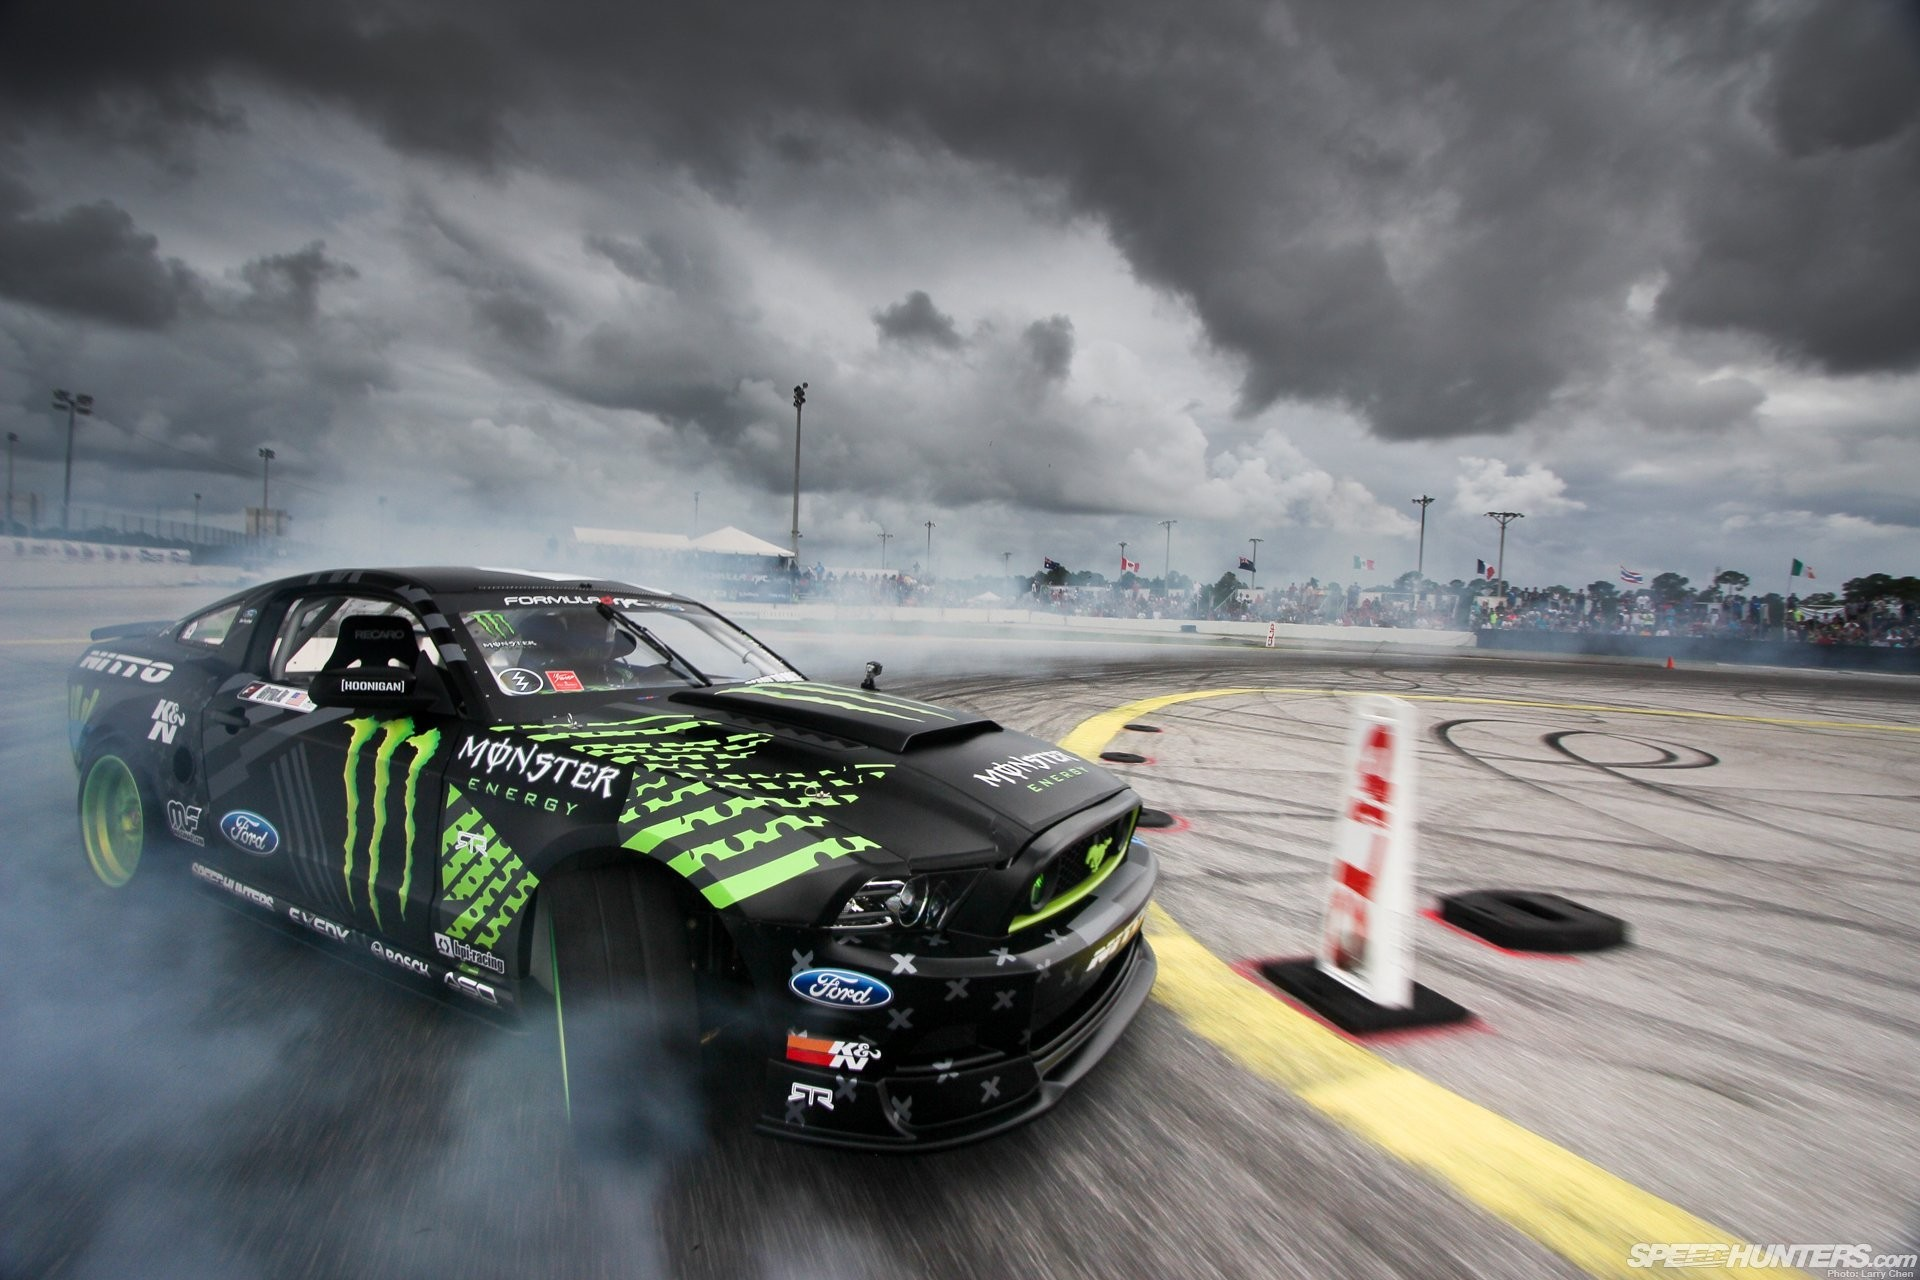 Monster Energy Wallpapers Hd 2017 89 Background Pictures